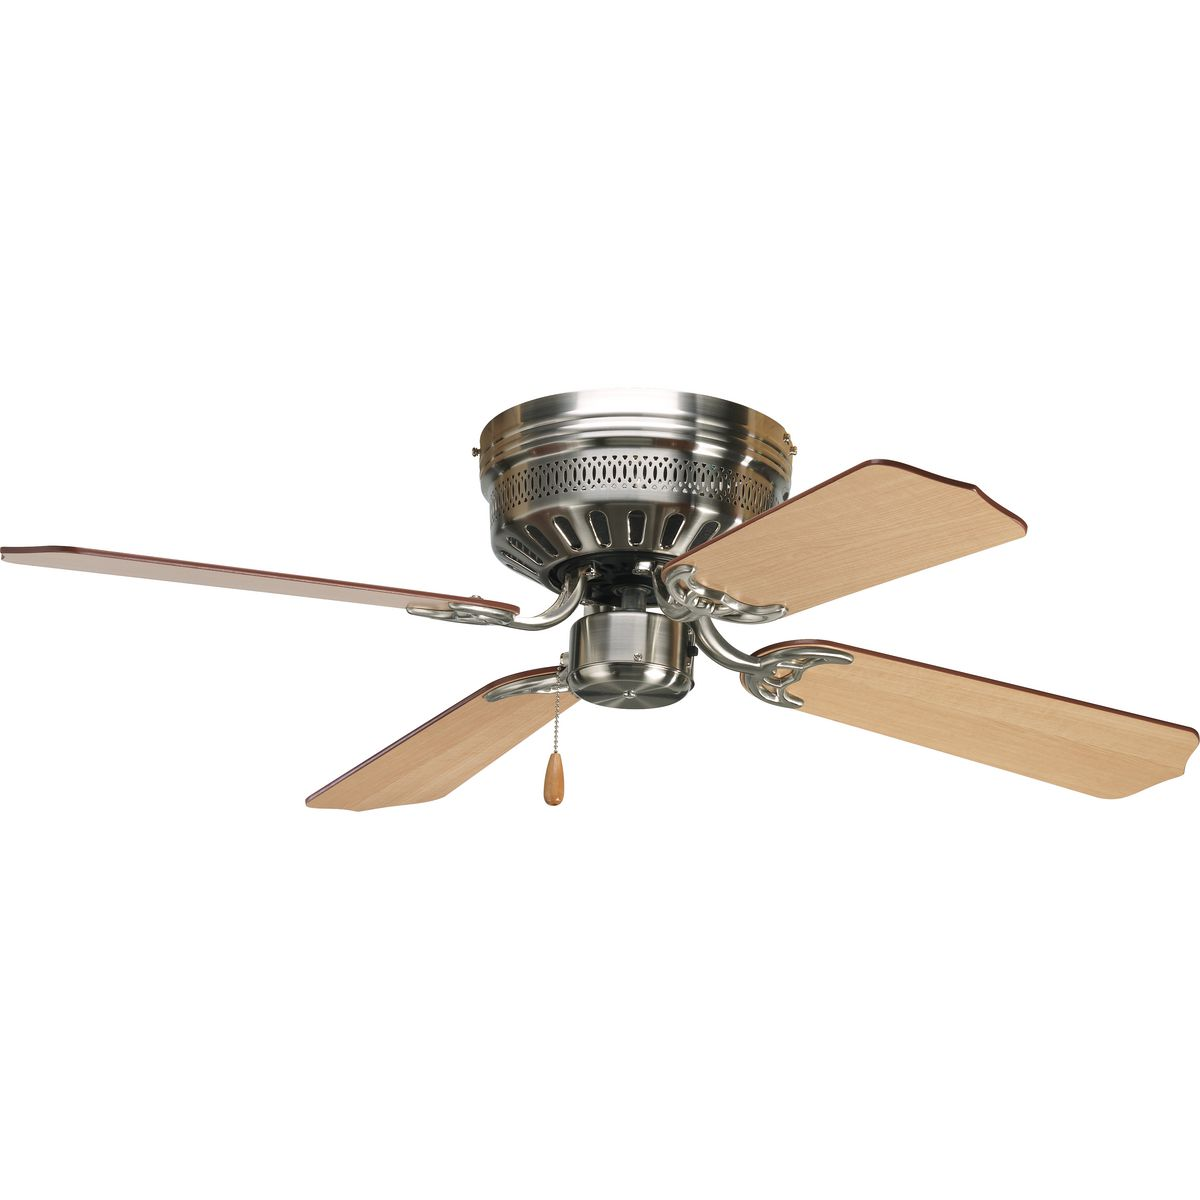 Airpro Collection 42 Four Blade Hugger Ceiling Fan P2524 09 Progress Lighting